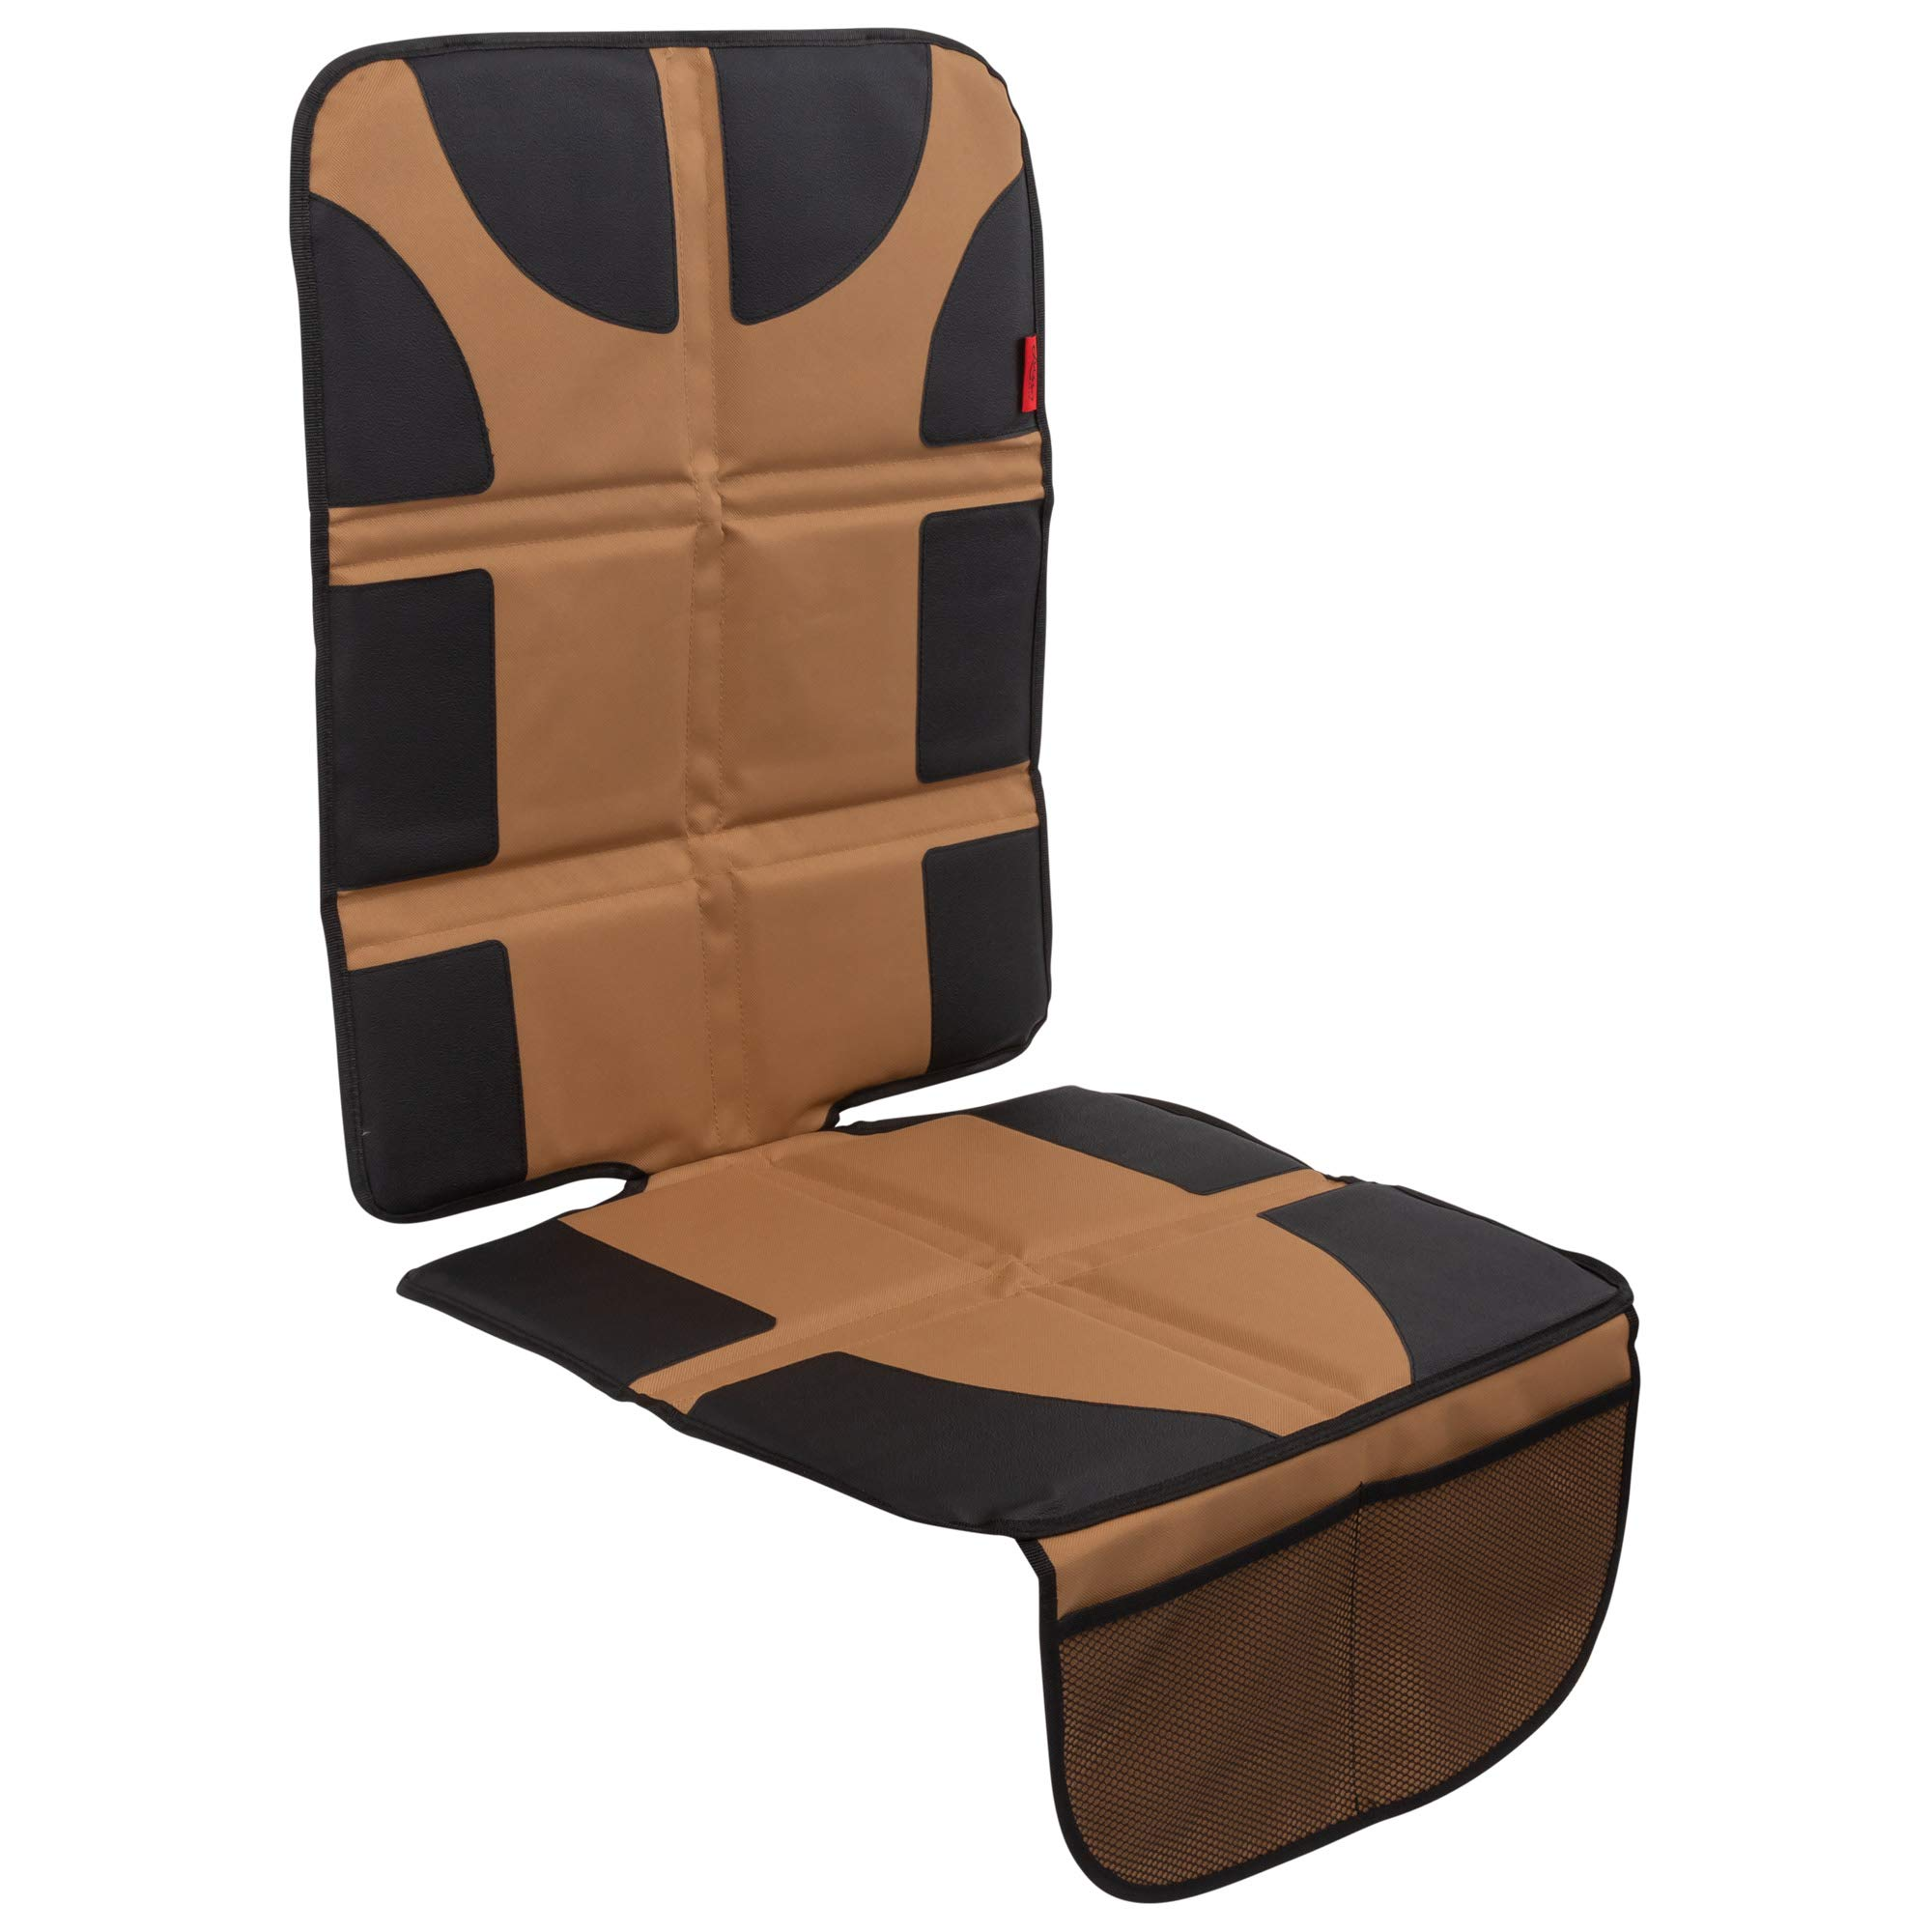 Lusso Gear Car Seat Protector with Thickest Padding - Featuring XL Size (Best Coverage Available), Durable, Waterproof 600D Fabric, PVC Leather Reinforced Corners & 2 Large Pockets for Handy Storage by Lusso Gear